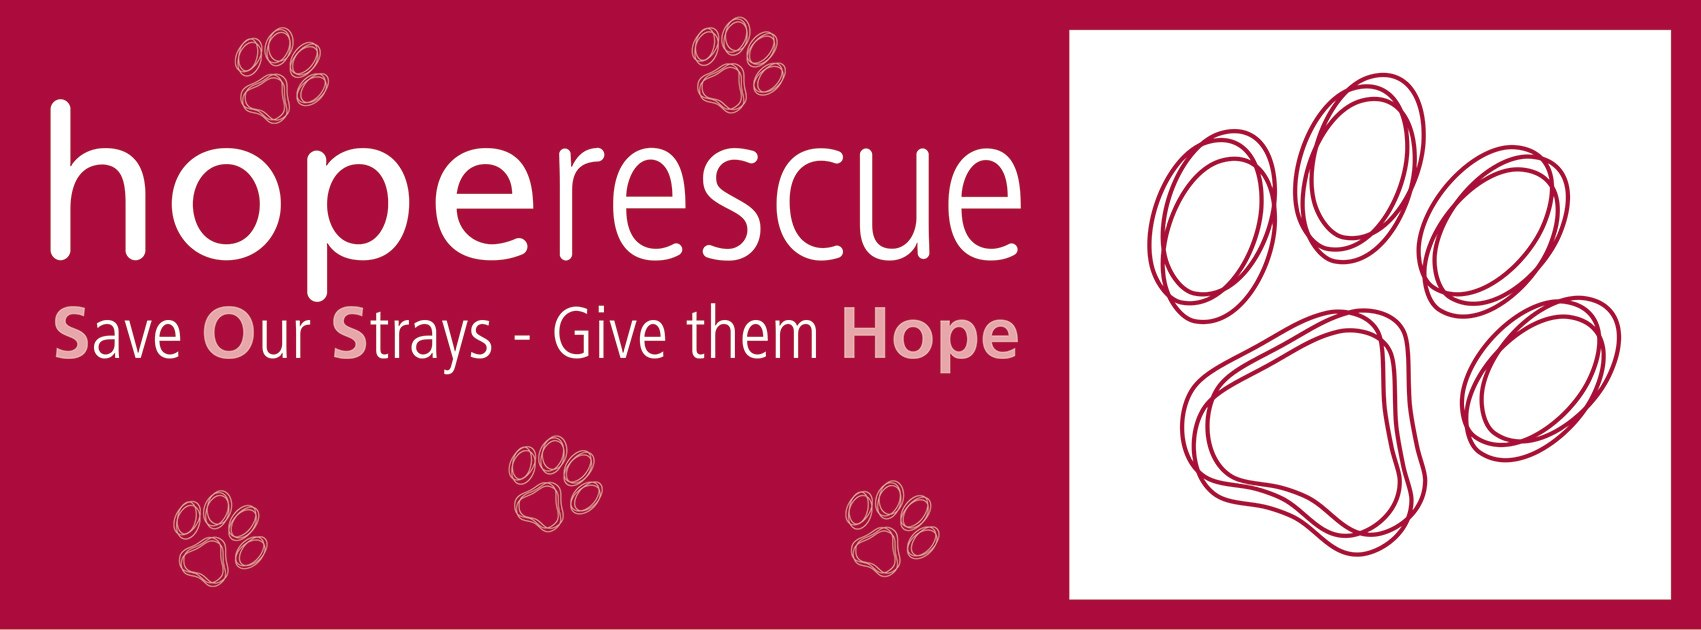 hope rescue logo